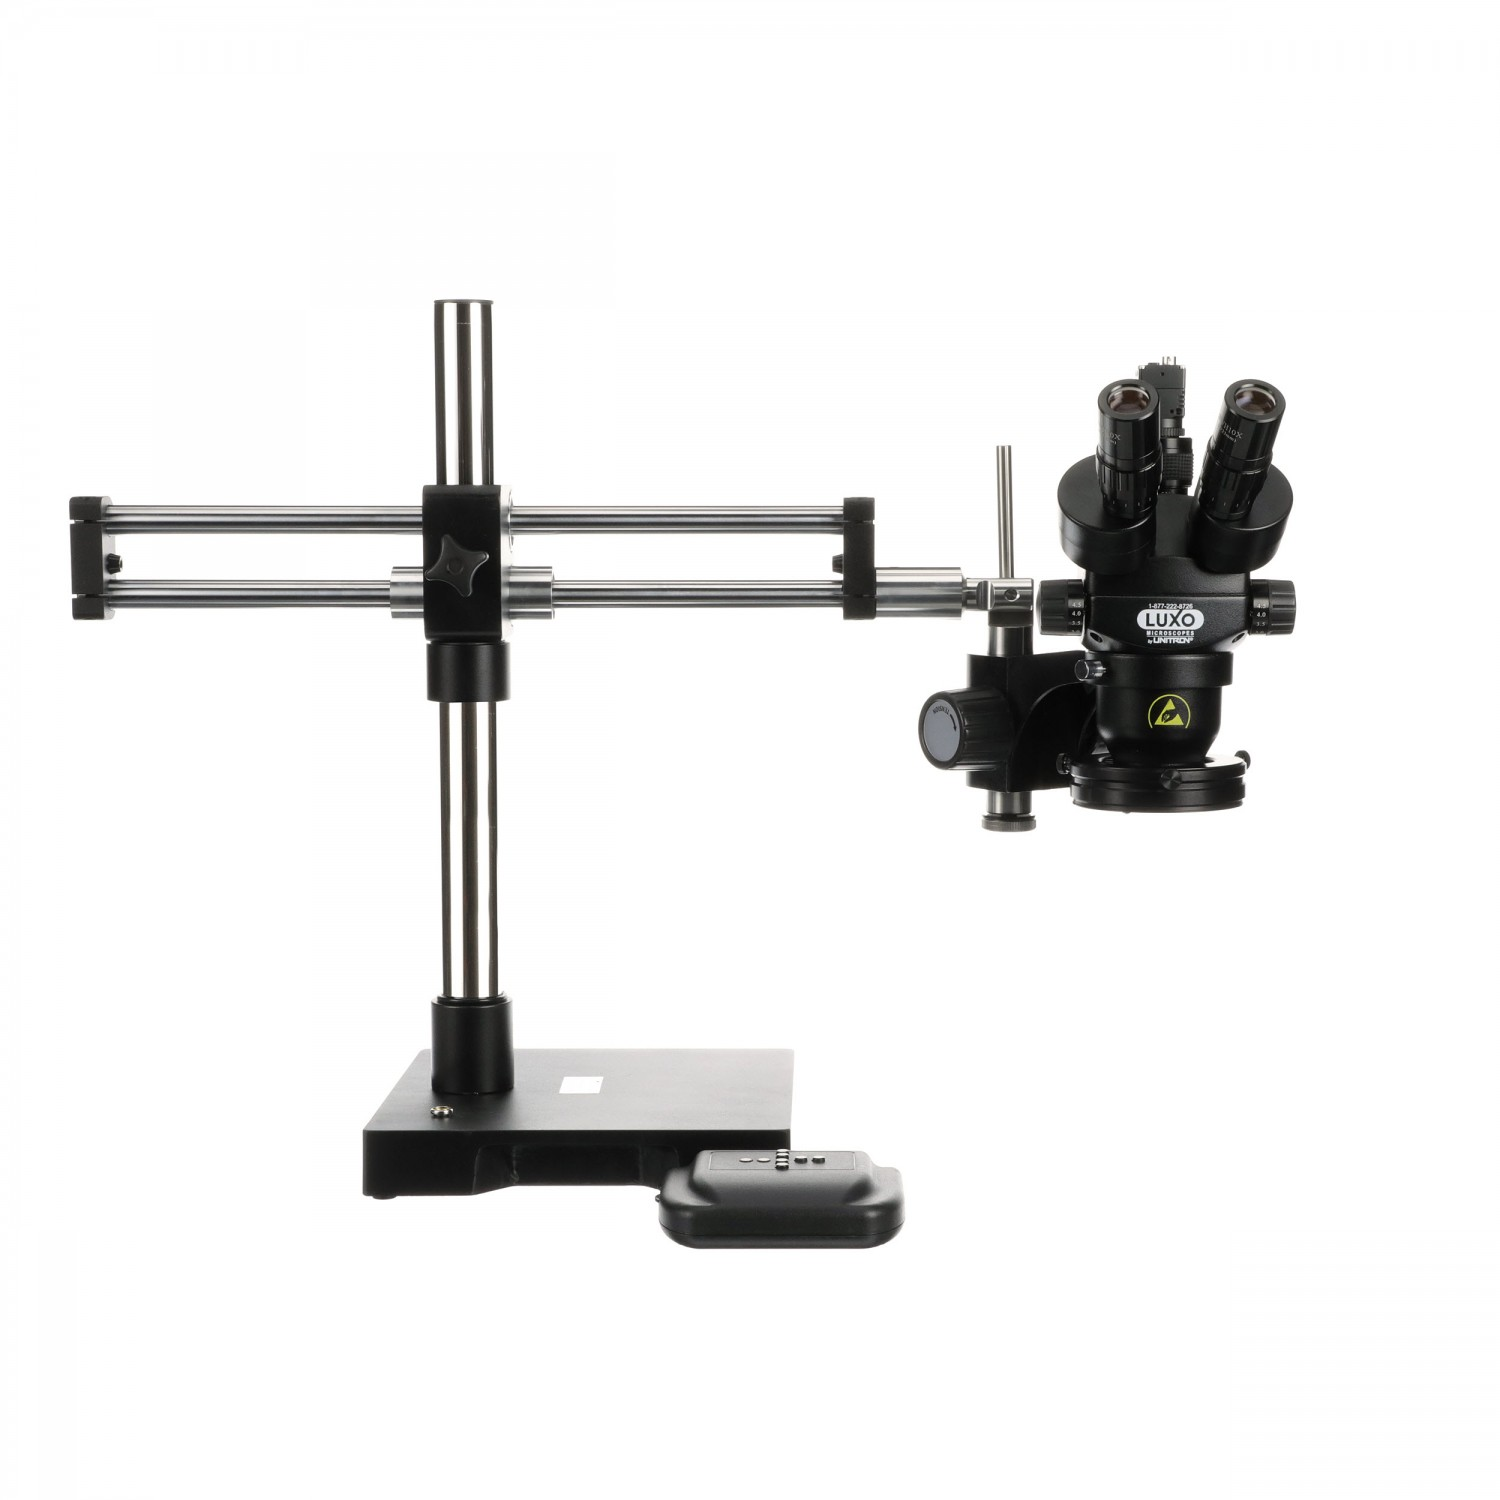 Luxo Microscope Syetem ESD-Safe, S-Z 23mm TRU Trinocular, RB Stand, Dimmable LED-High Output Ring Light, USB 3.0 Camera